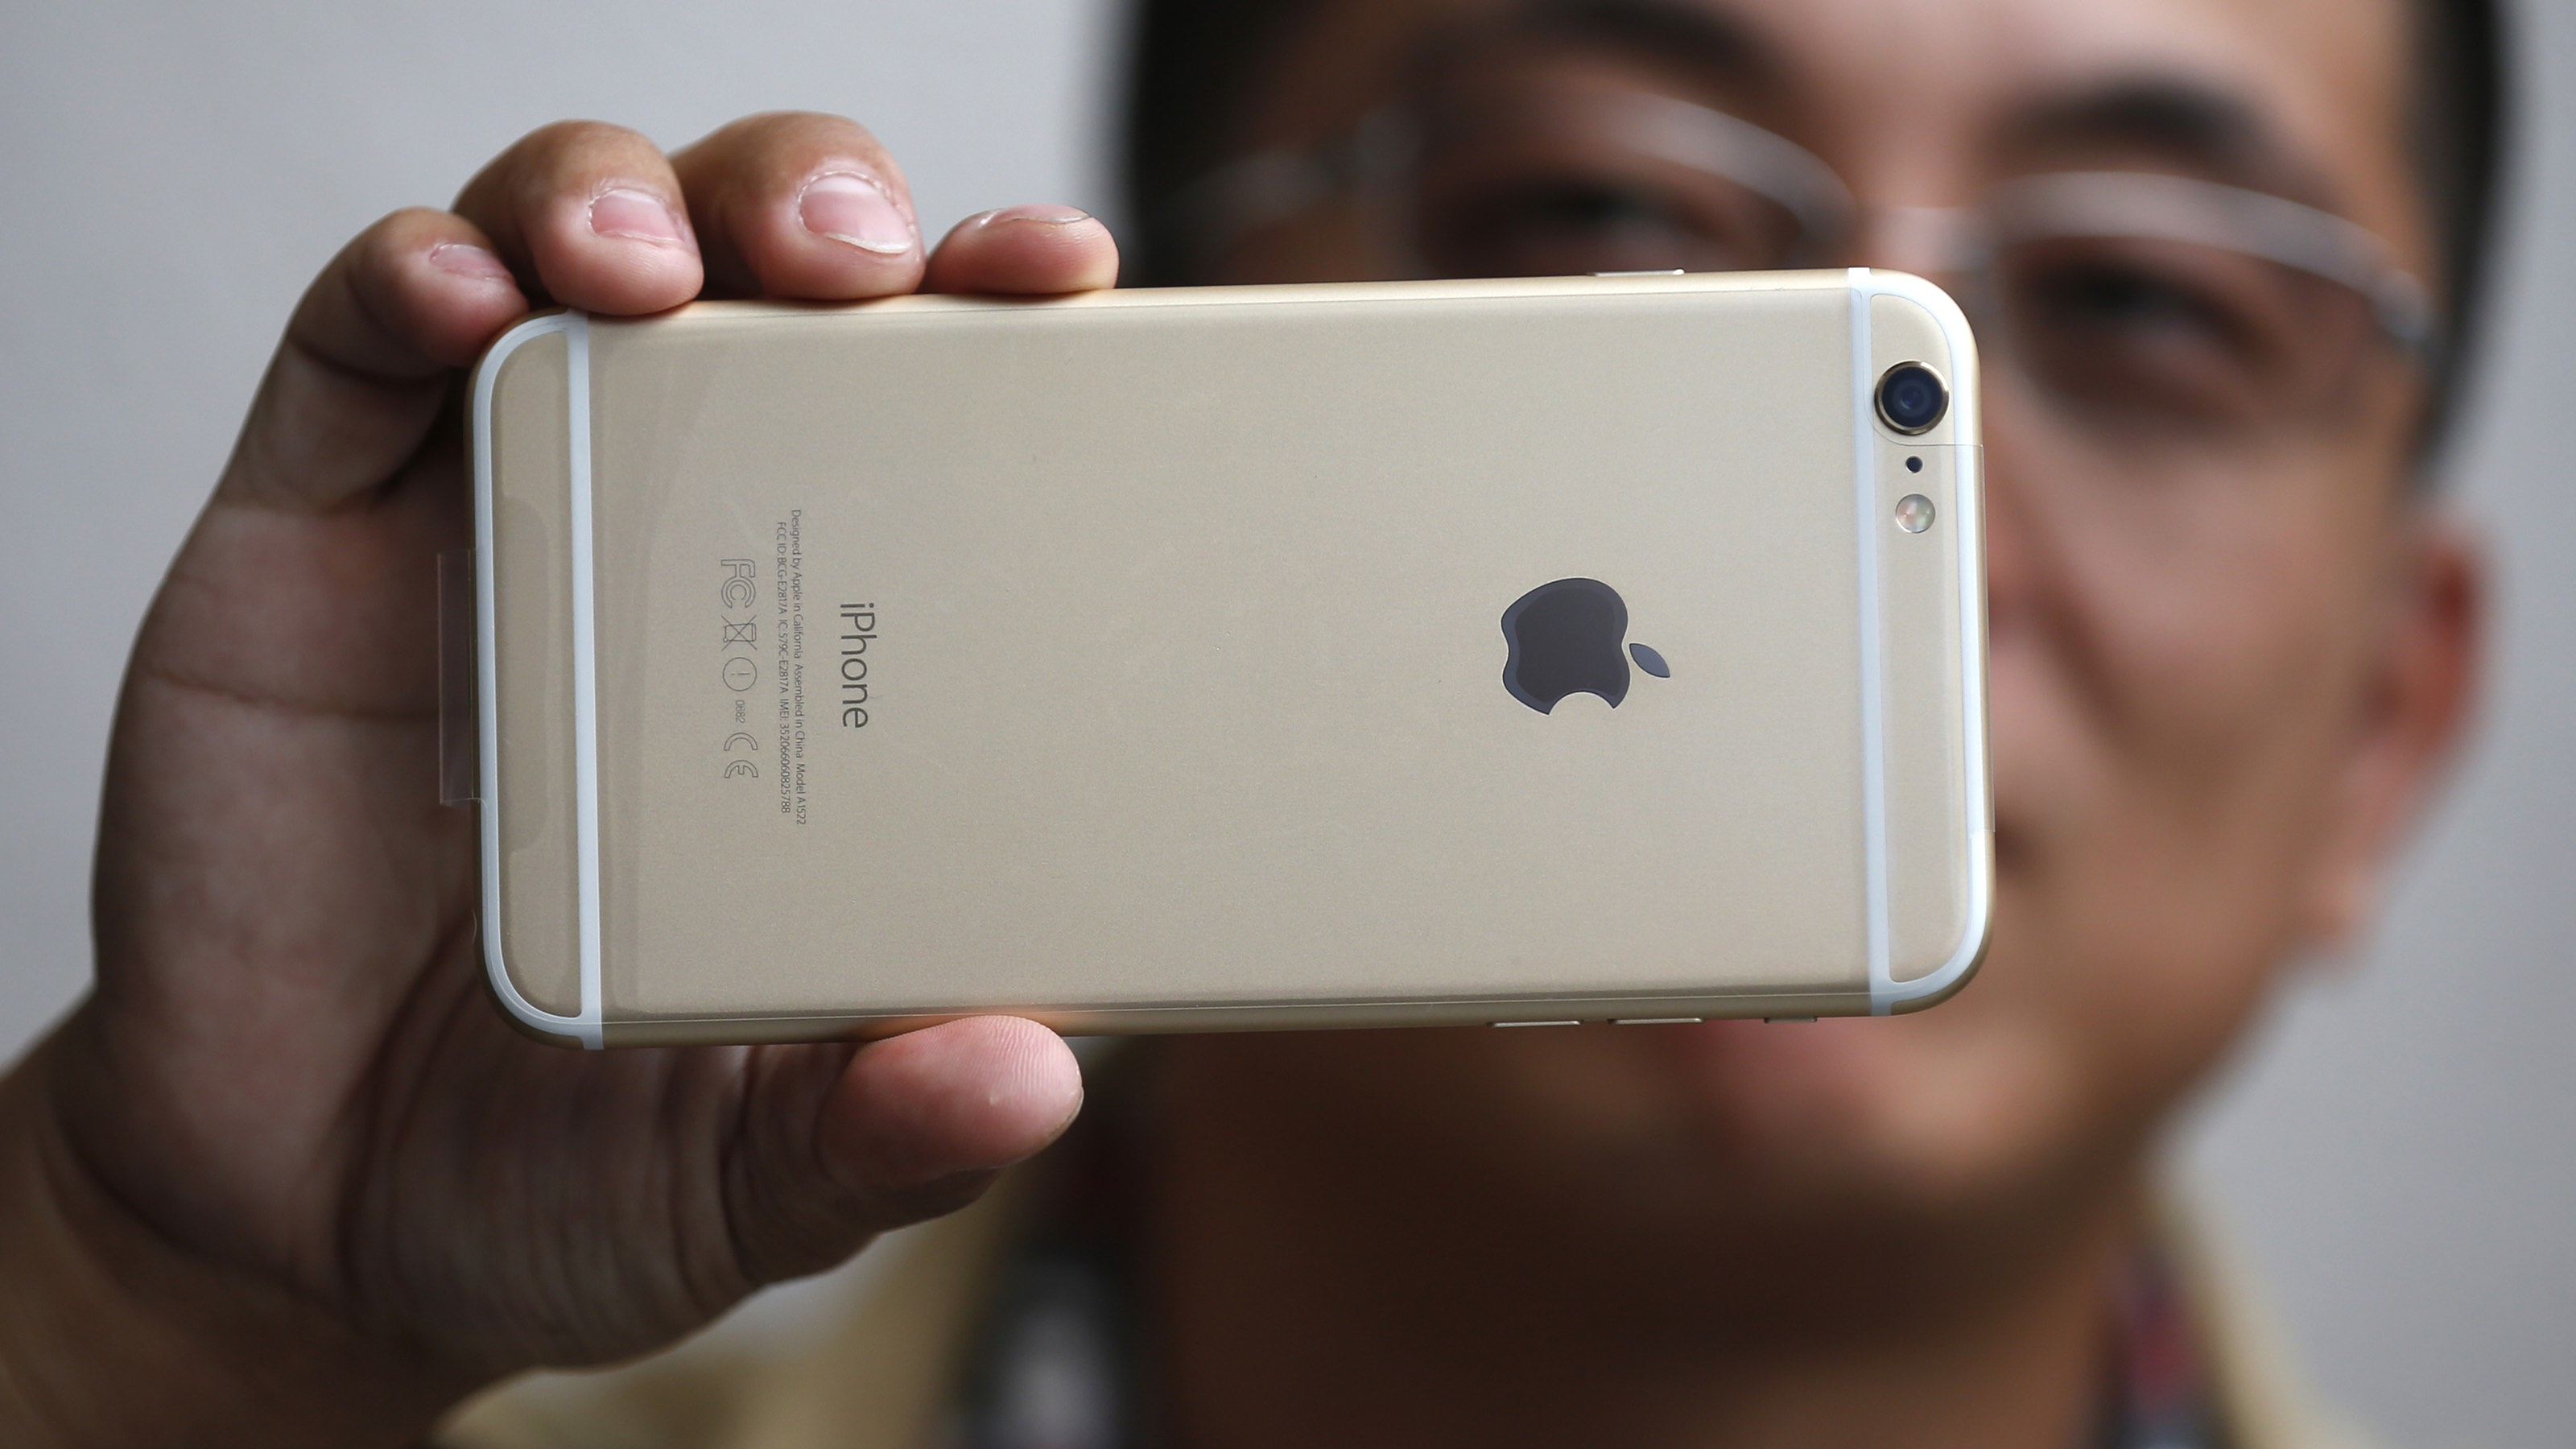 Tony Zhan, 32, holds up his new iPhone 6 Plus after it went on sale at the Apple store in Pasadena, California September 19, 2014. Hundreds of customers waited in lines outside the store on the first day the new iPhone became available. REUTERS/Lucy Nicholson (UNITED STATES - Tags: BUSINESS TELECOMS)